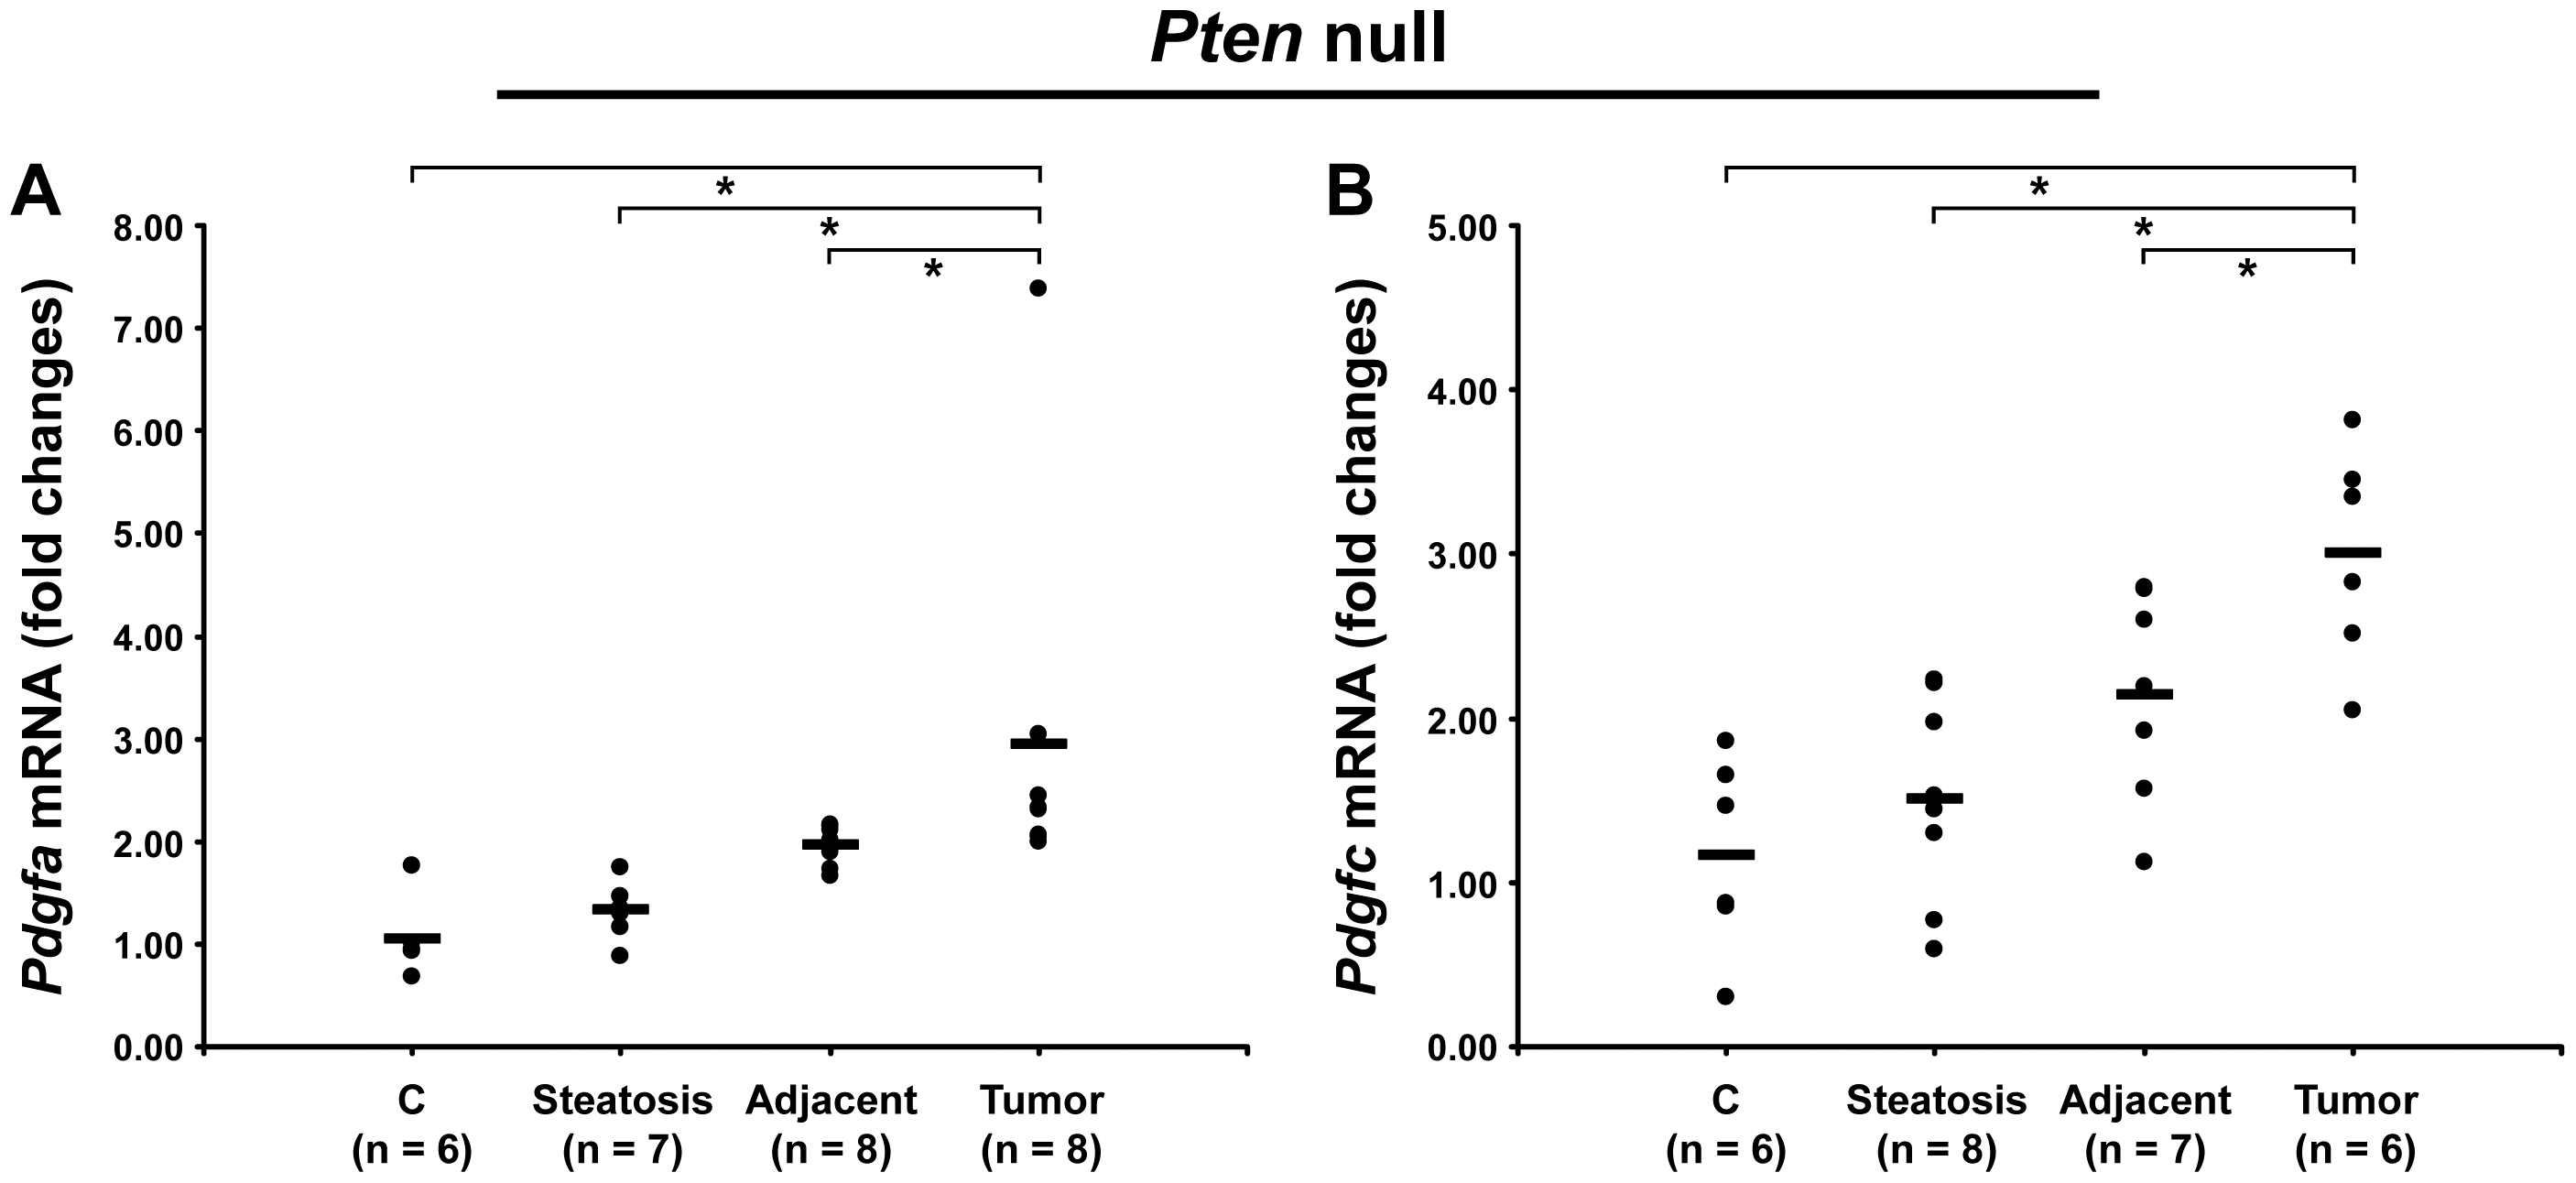 Up-regulation of <i>Pdgfa</i> and <i>Pdgfc</i> mRNAs in <i>Pten</i> null tumors.